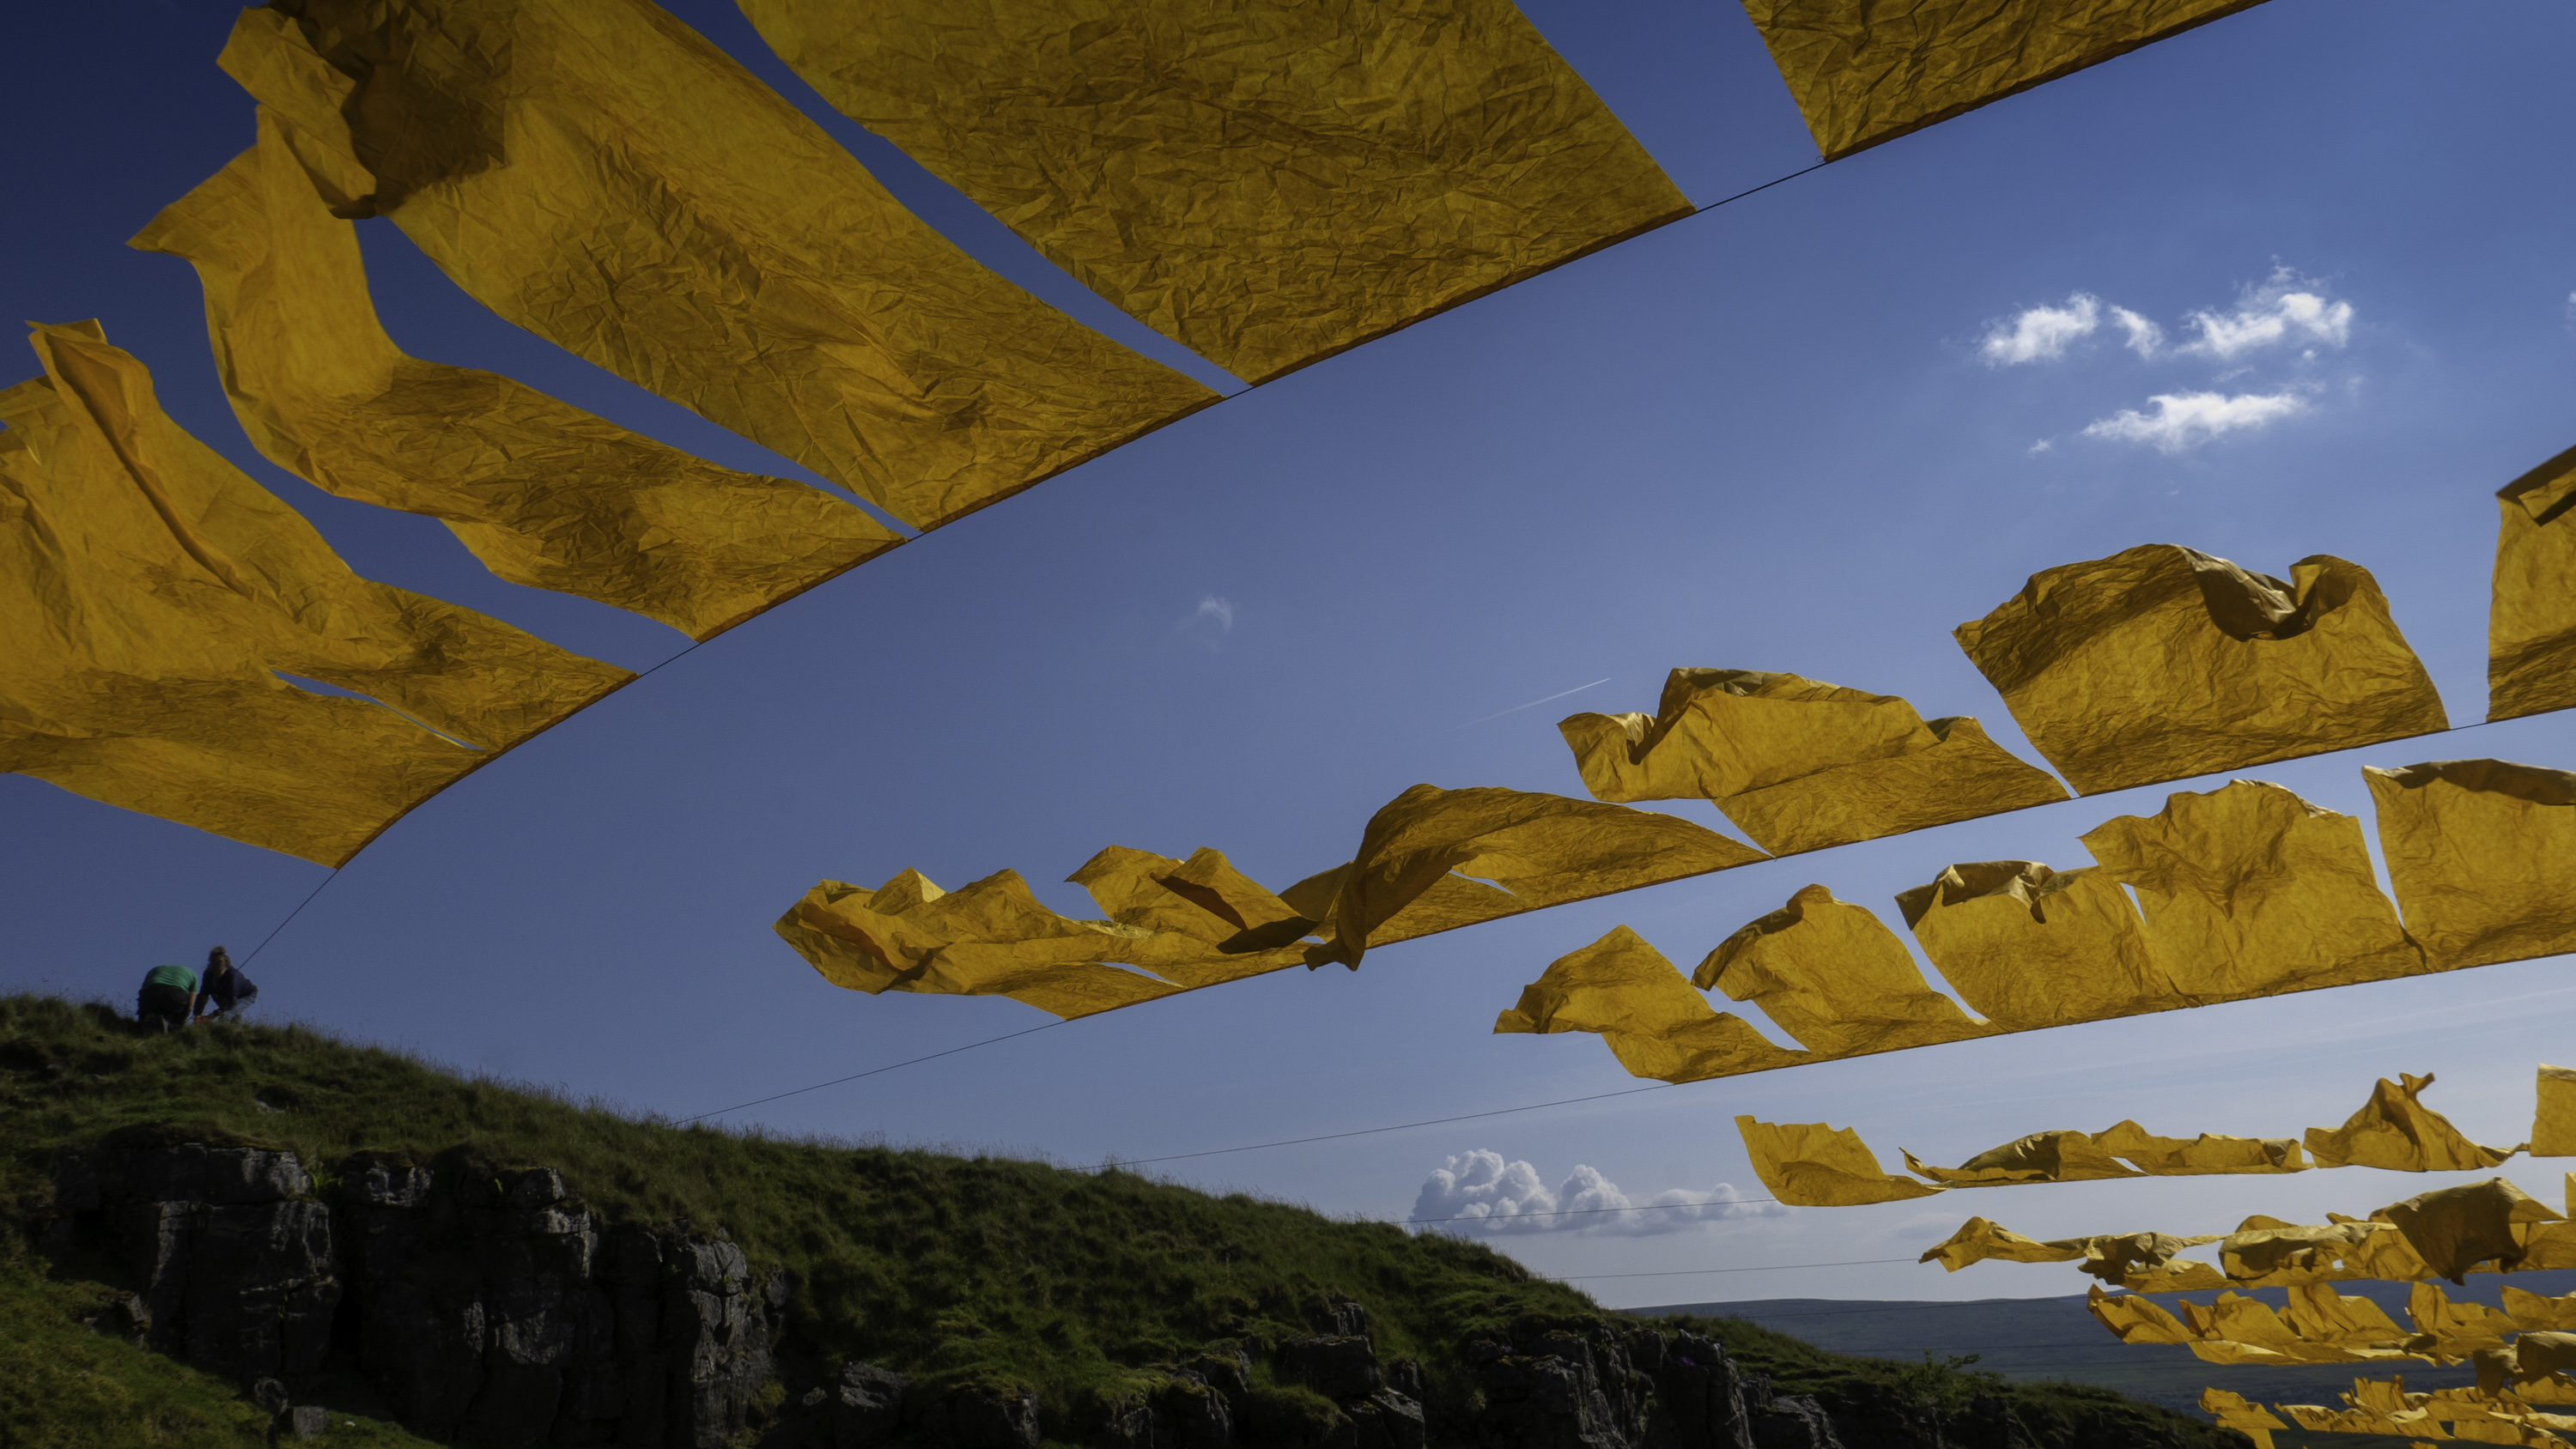 Hush Steve Messam Upper North Pennines AONB Partnership Teesdale